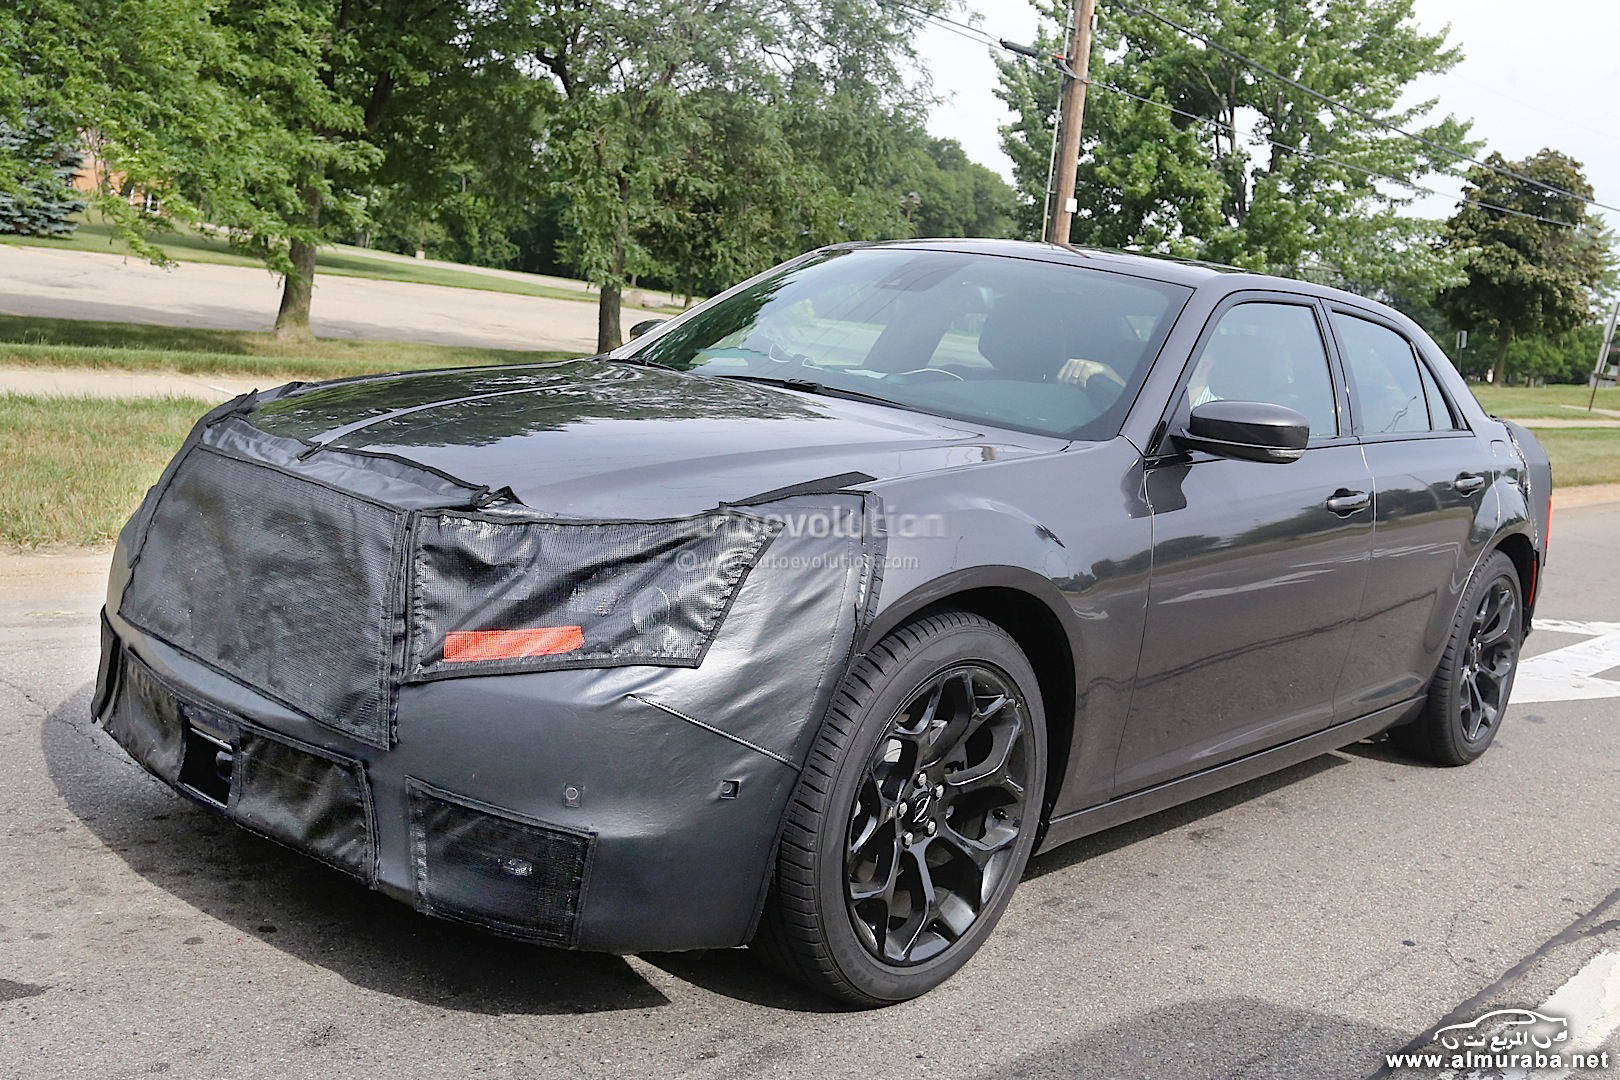 spyshots-2015-chrysler-300-photo-gallery_12